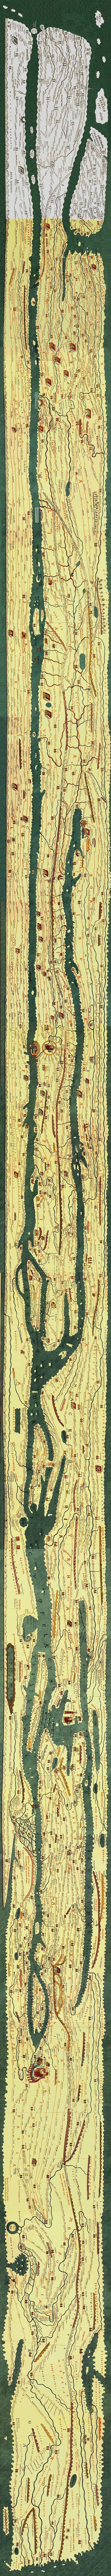 The Tabula Peutingeriana (Peutinger table, Peutinger Map) is an illustrated itinerarium (in effect, a road map) showing the cursus publicus, the road network in the Roman Empire. The original map (of which this is a unique copy) was last revised in the fourth or early fifth century. It covers Europe, North Africa and parts of Asia (the Middle East, Persia, India).